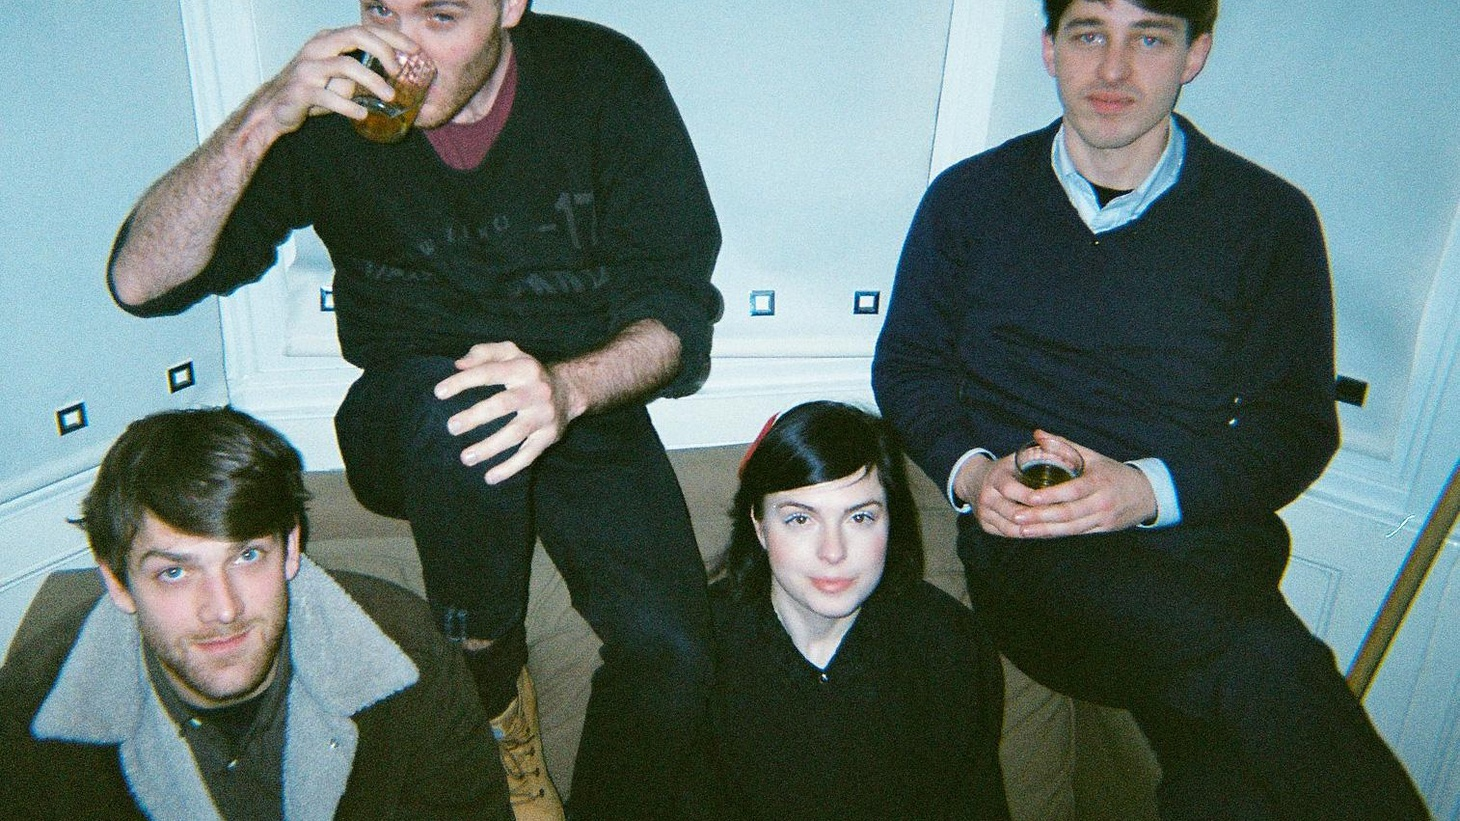 Brighton-based Kins binds plaintive vocals with pretty melodies as heard on Today's Top Tune.